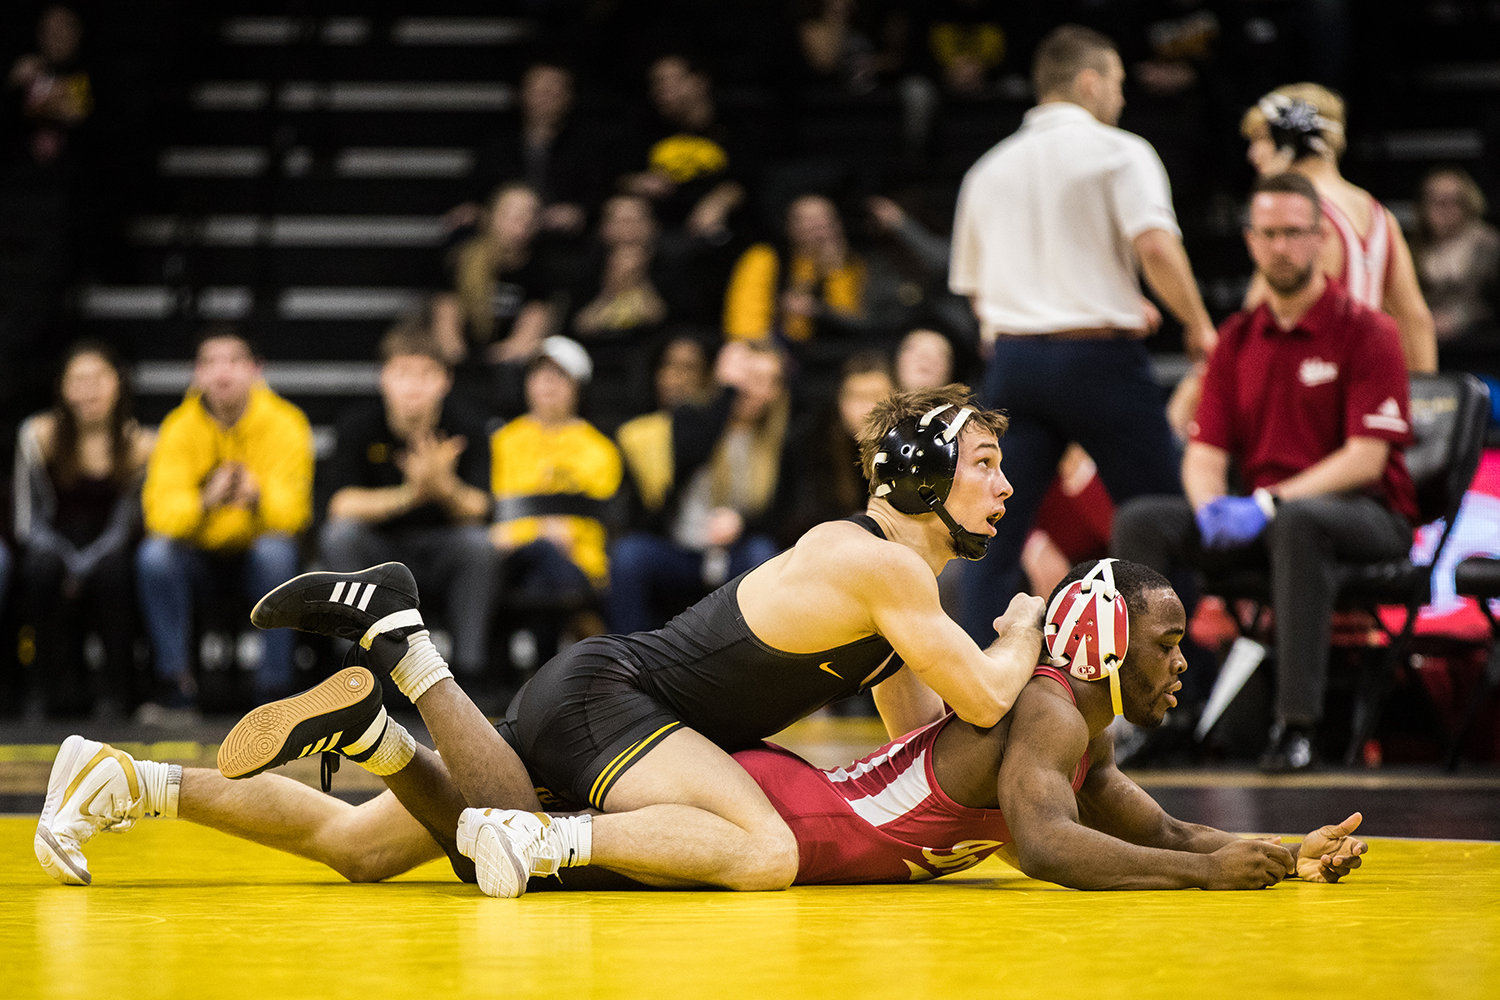 Iowa's No. 2 Spencer Lee wrestles Indiana's Elijah Oliver at 125lb during a wrestling match between Iowa and Indiana at Carver-Hawkeye Arena on Friday, February 15, 2019. The Hawkeyes, celebrating senior night, defeated the Hoosiers 37-9. (Shivansh Ahuja/The Daily Iowan)